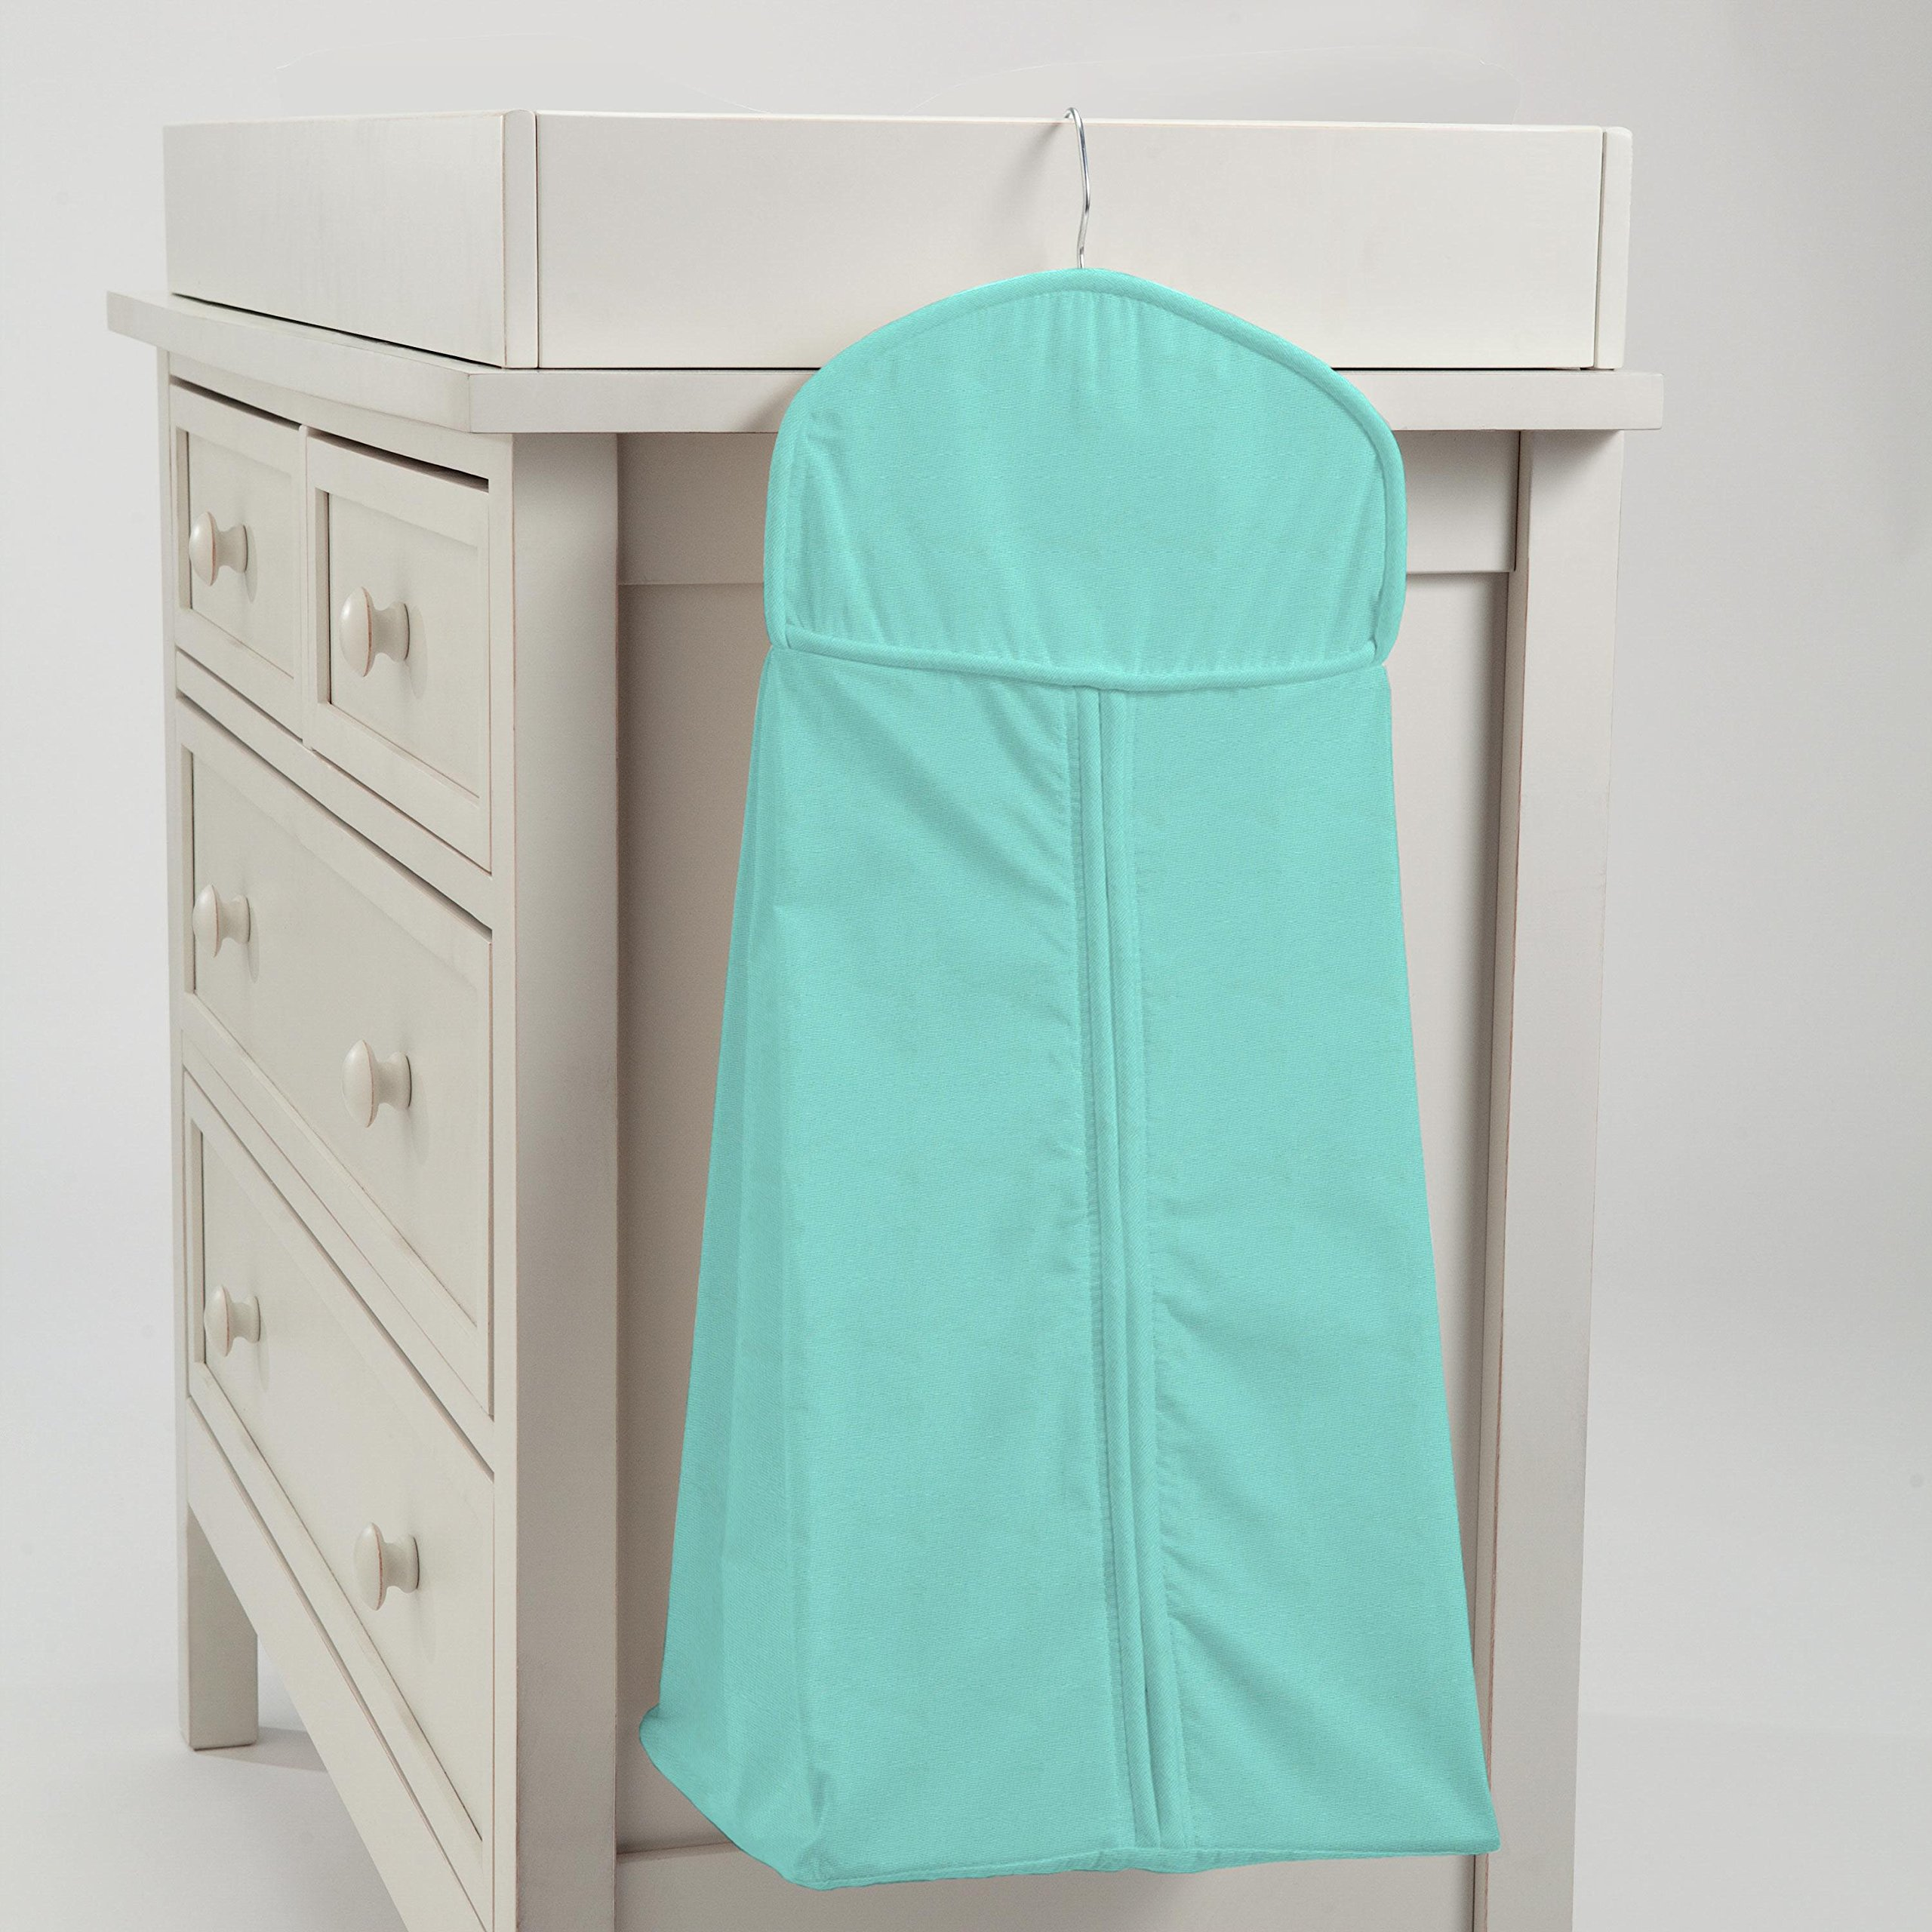 Carousel Designs Solid Teal Diaper Stacker